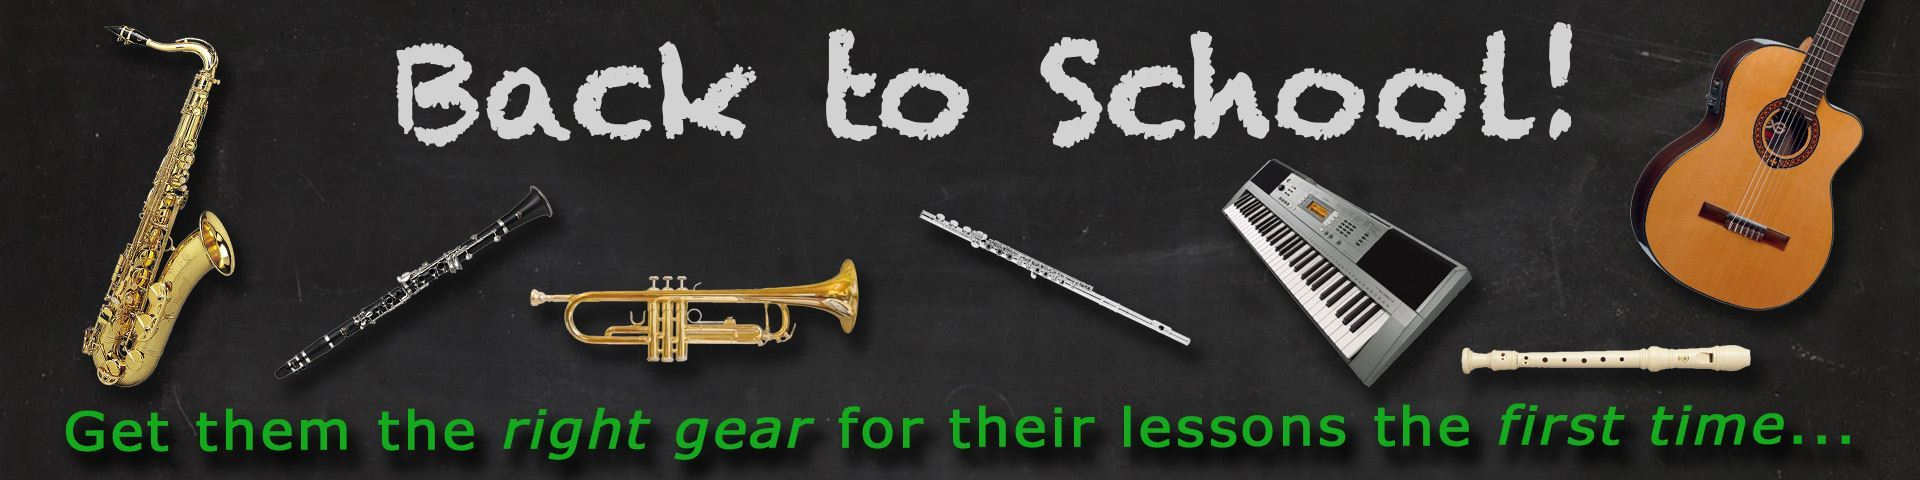 Back to School Musical Instruments